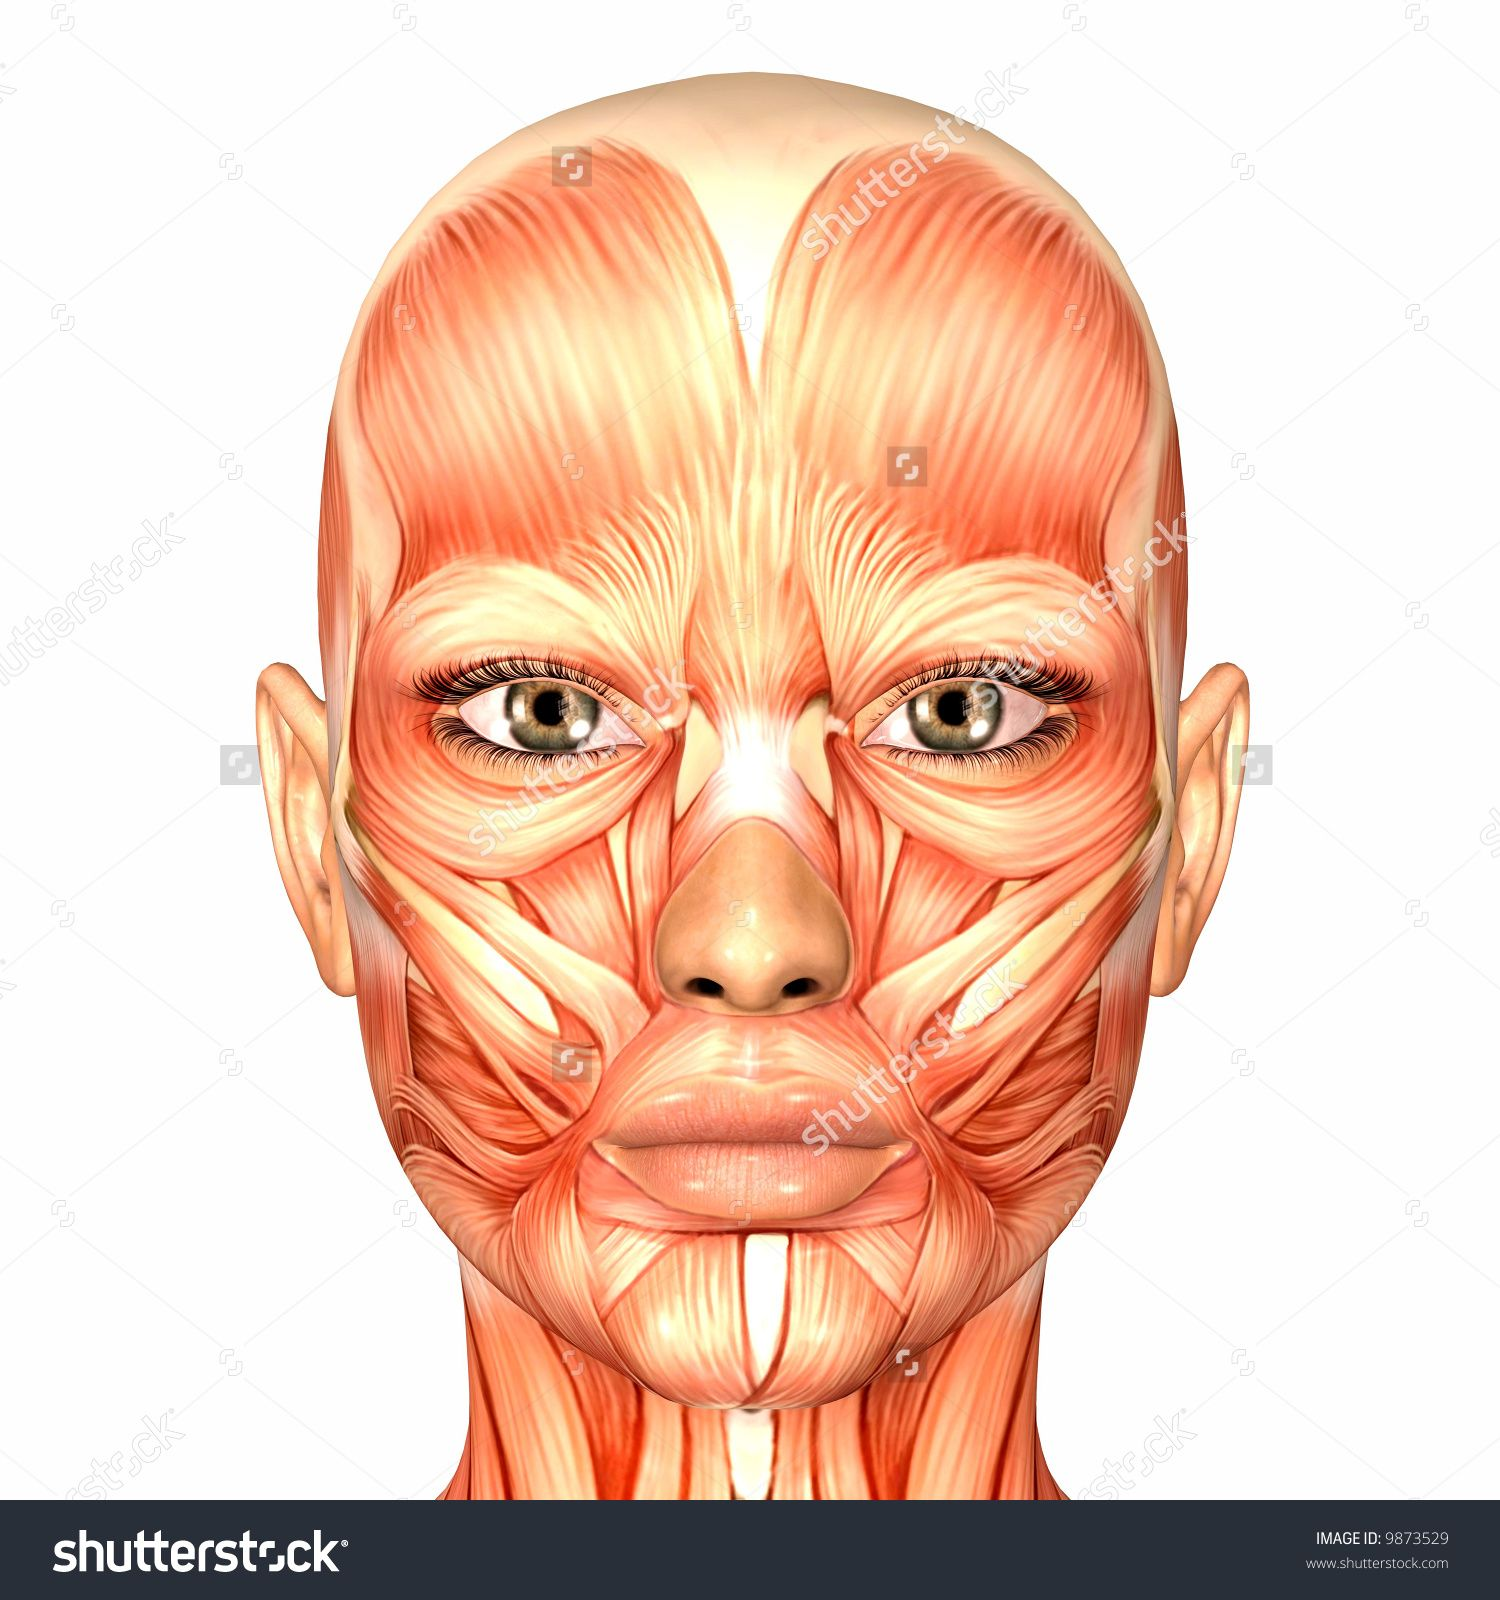 Imageutterstock Z Stock Photo Human Anatomy